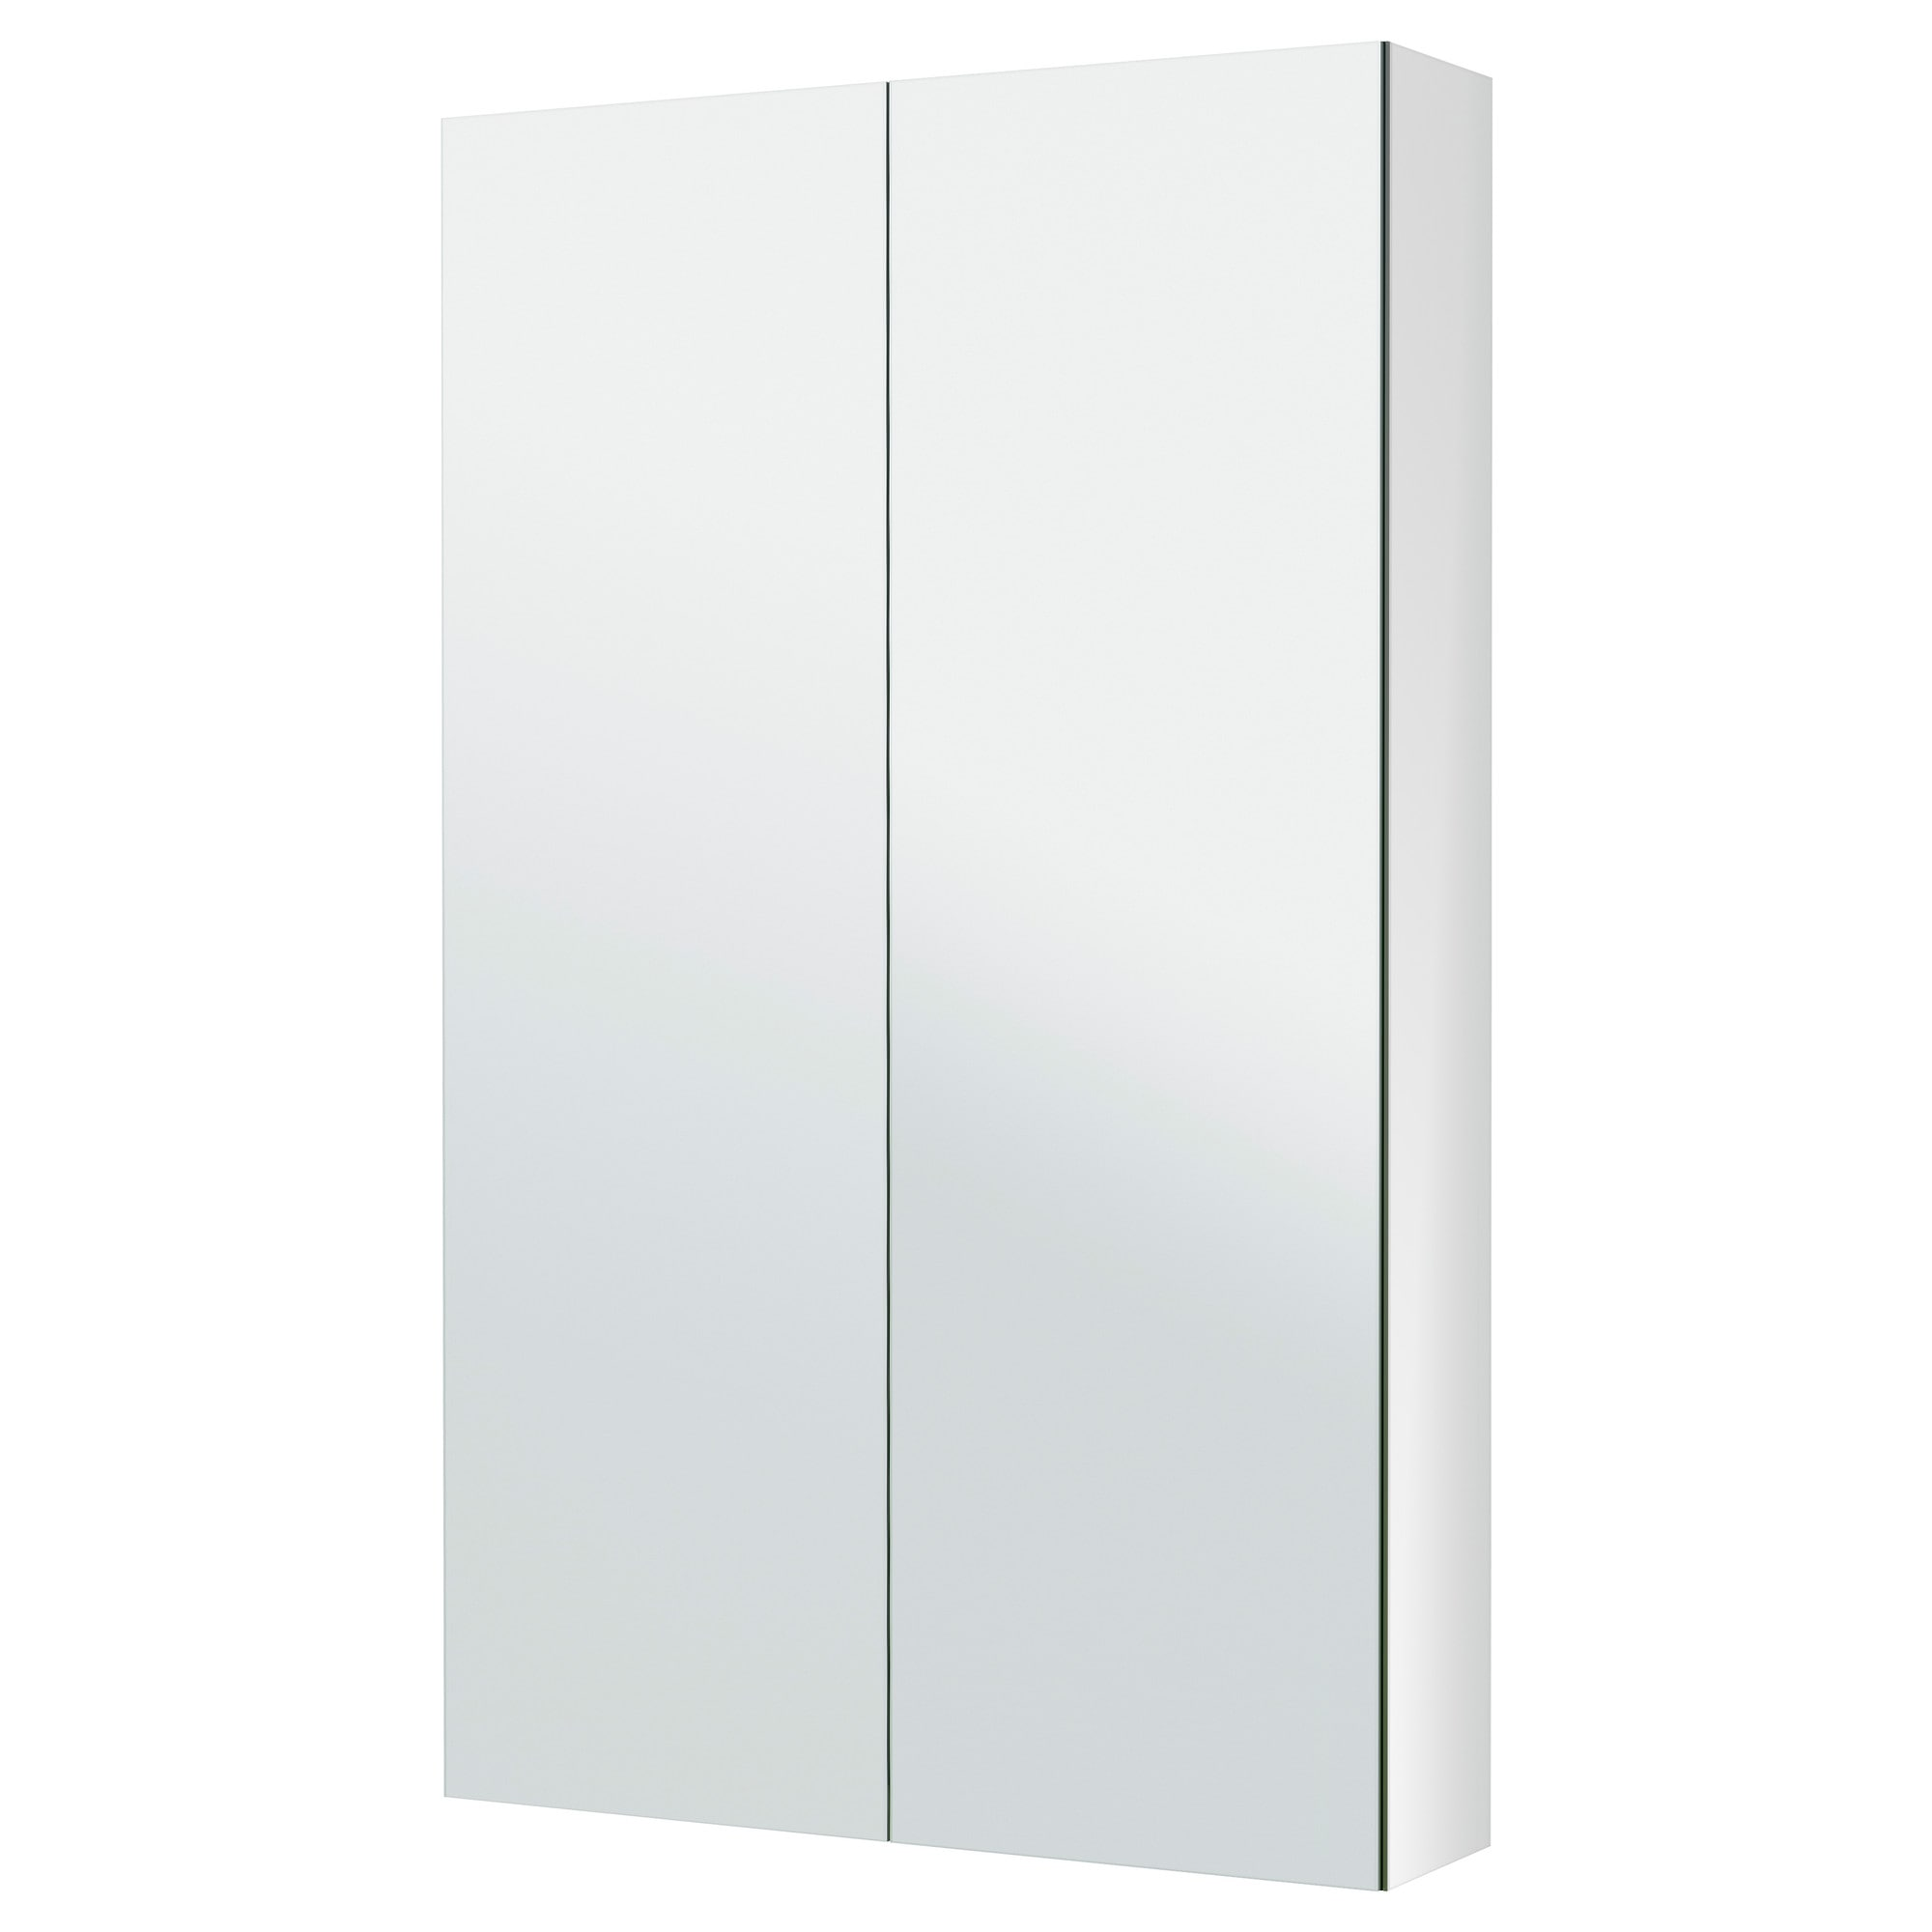 "Bathroom Cabinets Mirror godmorgon mirror cabinet with 2 doors - 31 1/2x5 1/2x37 3/4 "" - ikea"